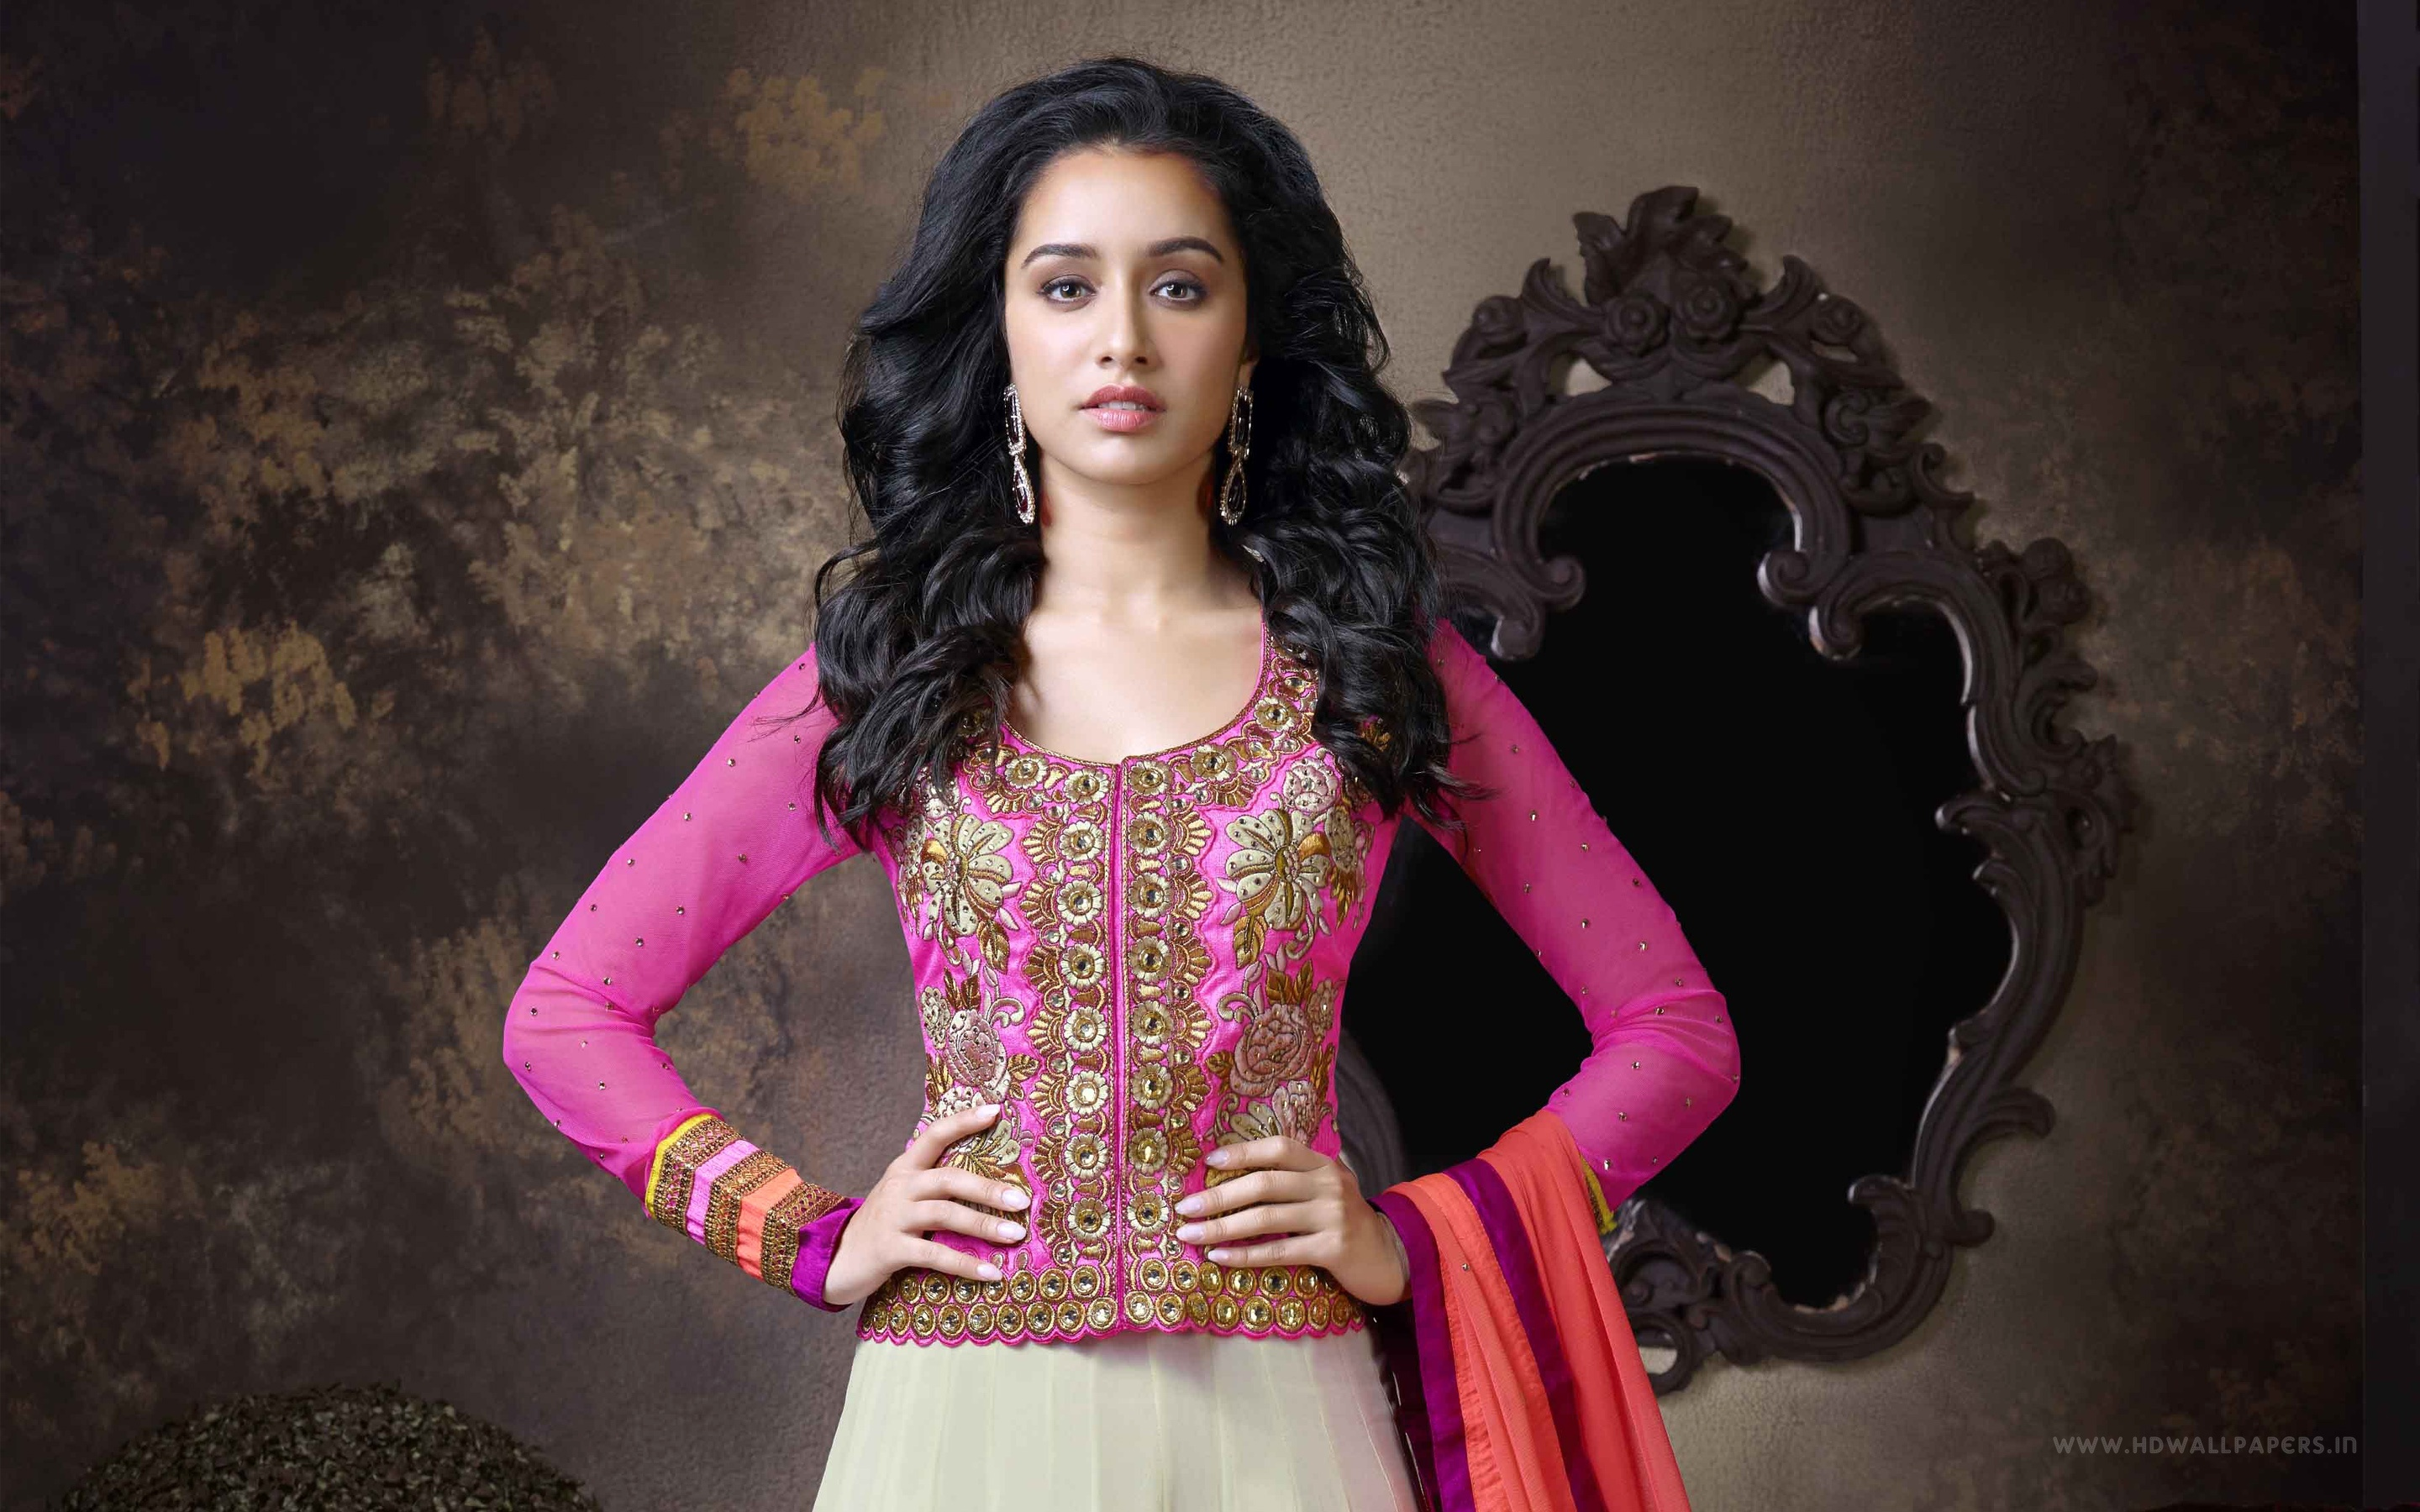 shraddha kapoor 4 wallpapers in jpg format for free download